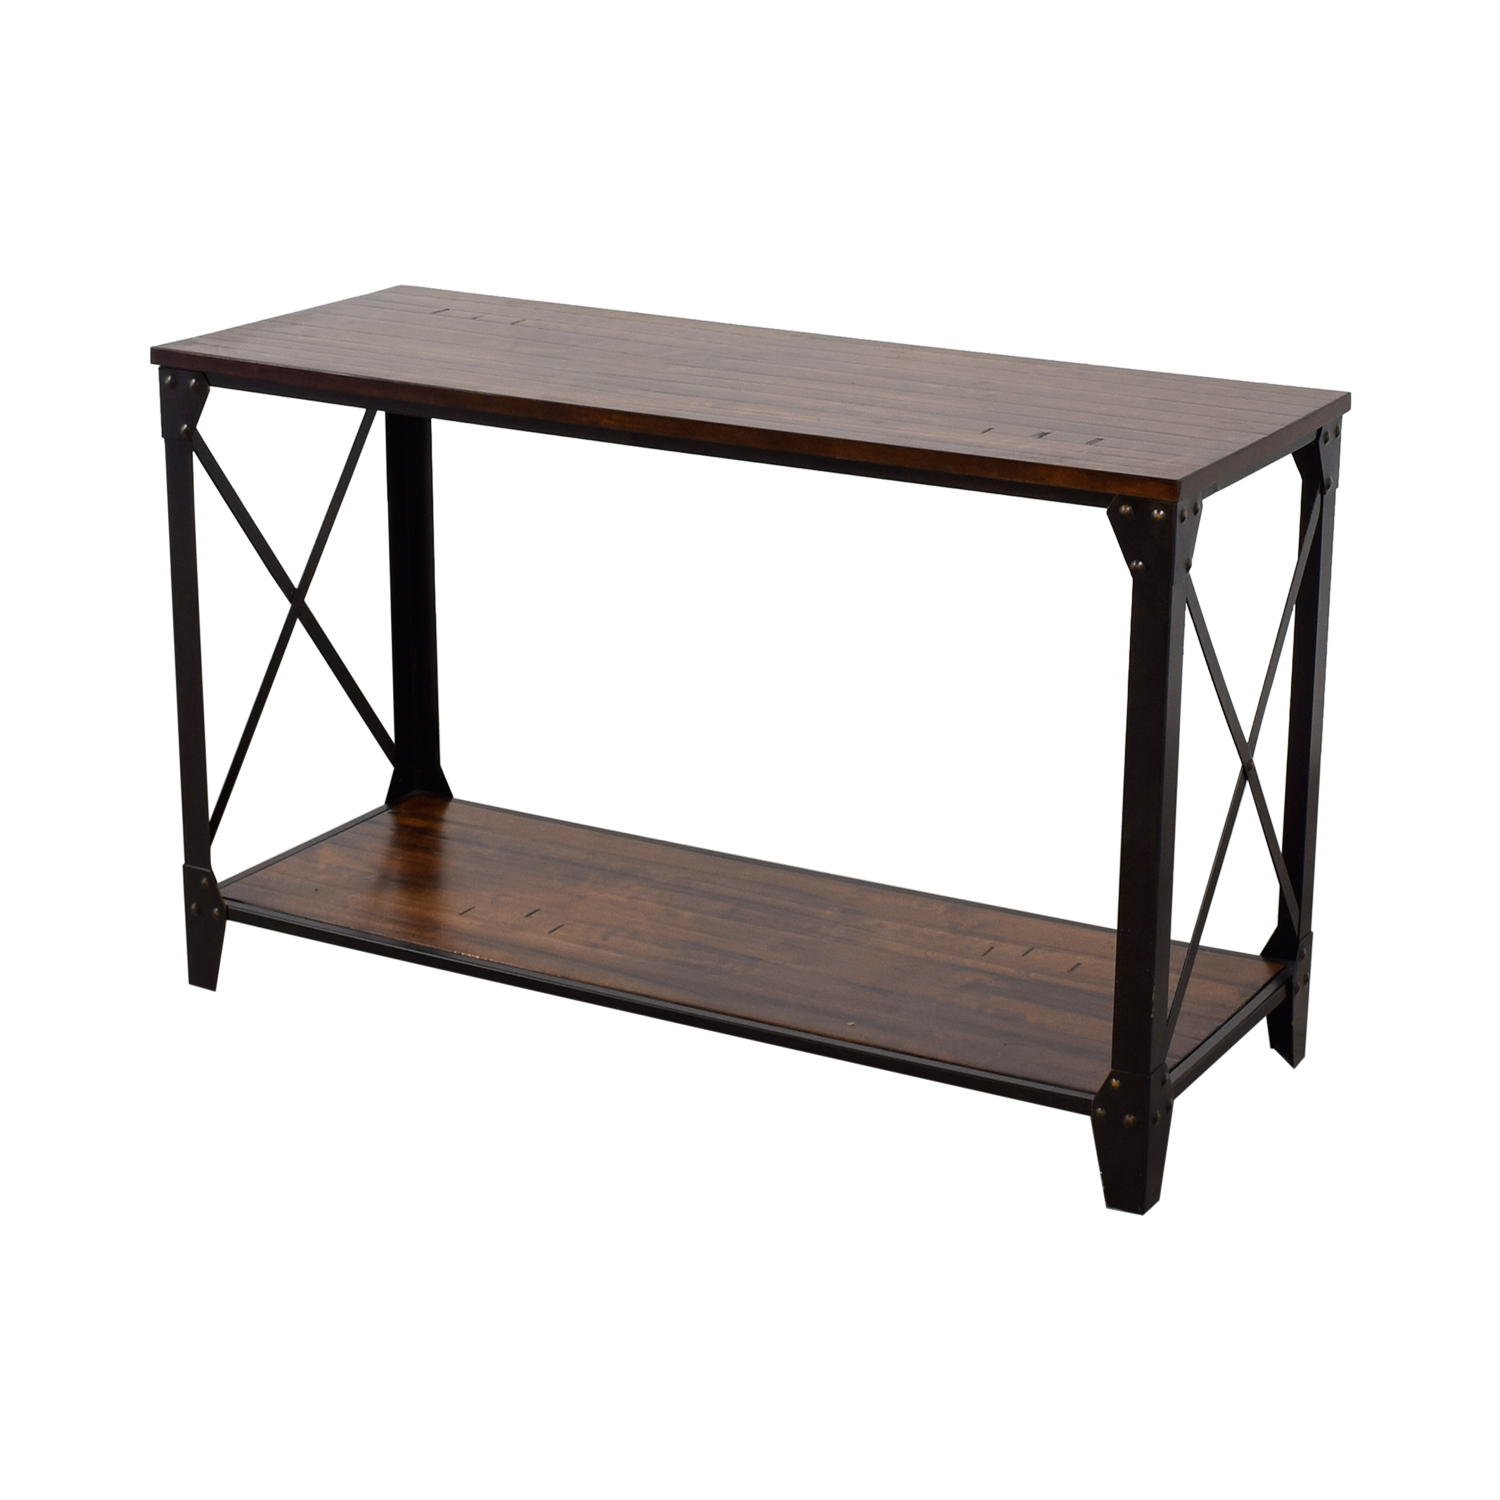 Coffee Tables Buy Metal Rustic Wooden Console Tables